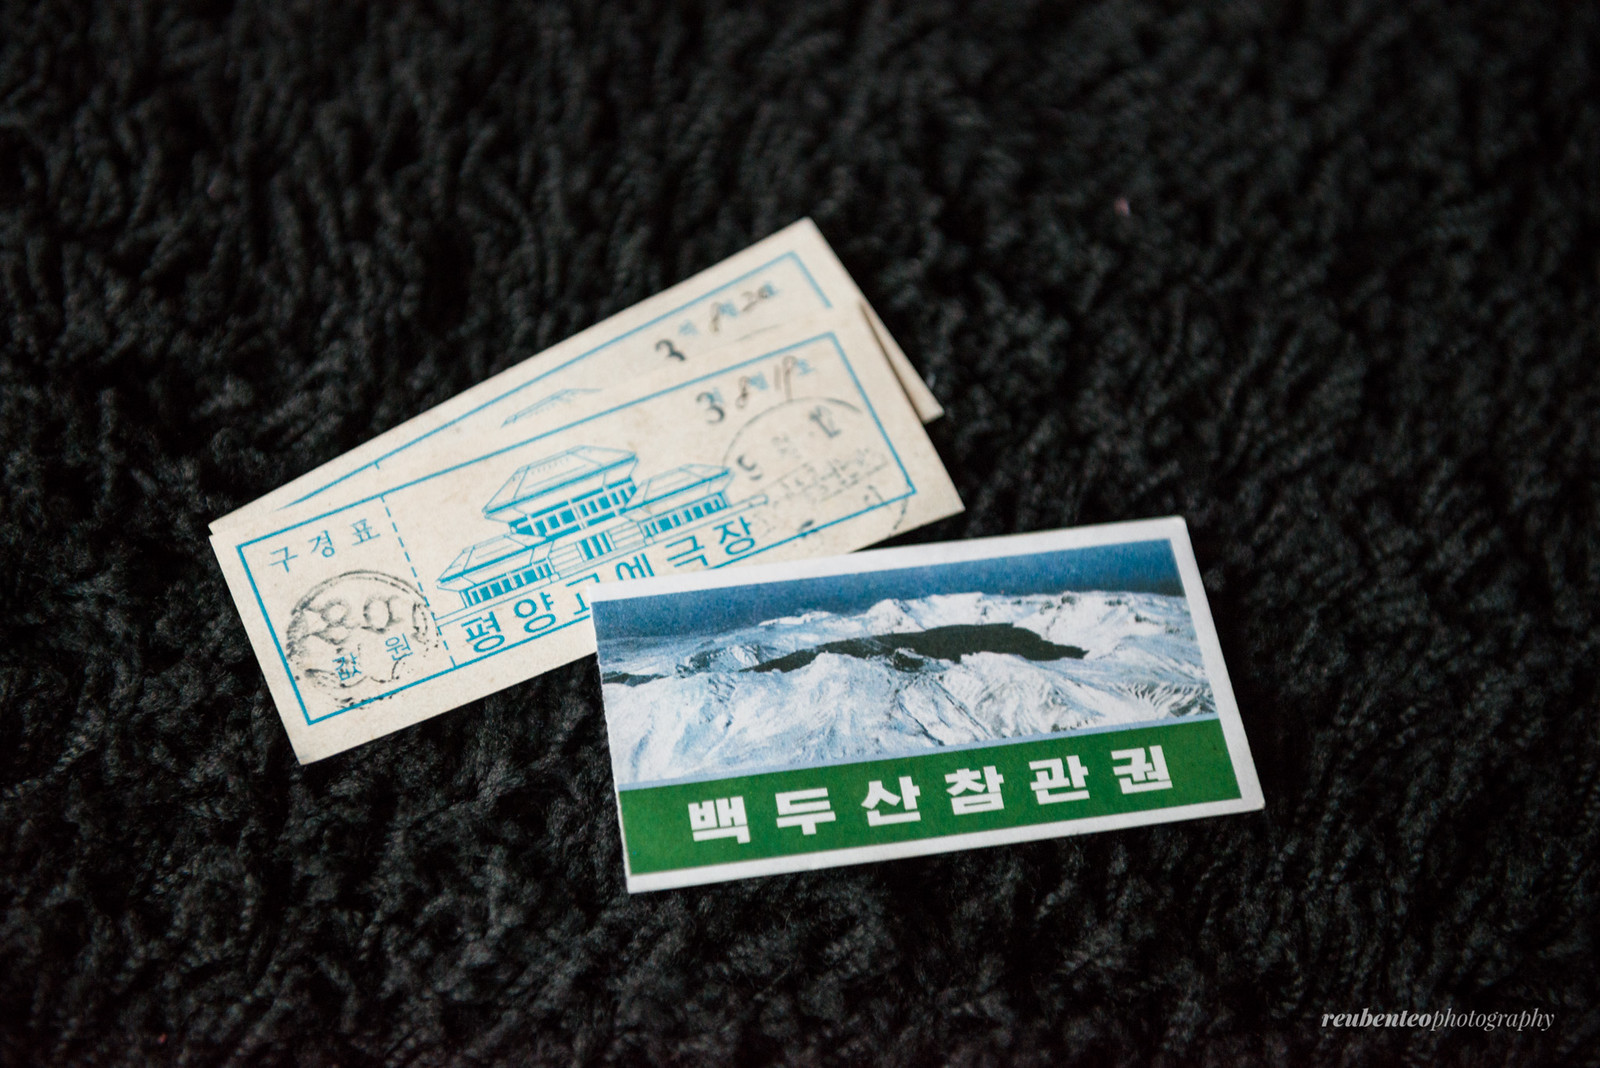 Pyongyang Theatre & Mount Paektu Tickets